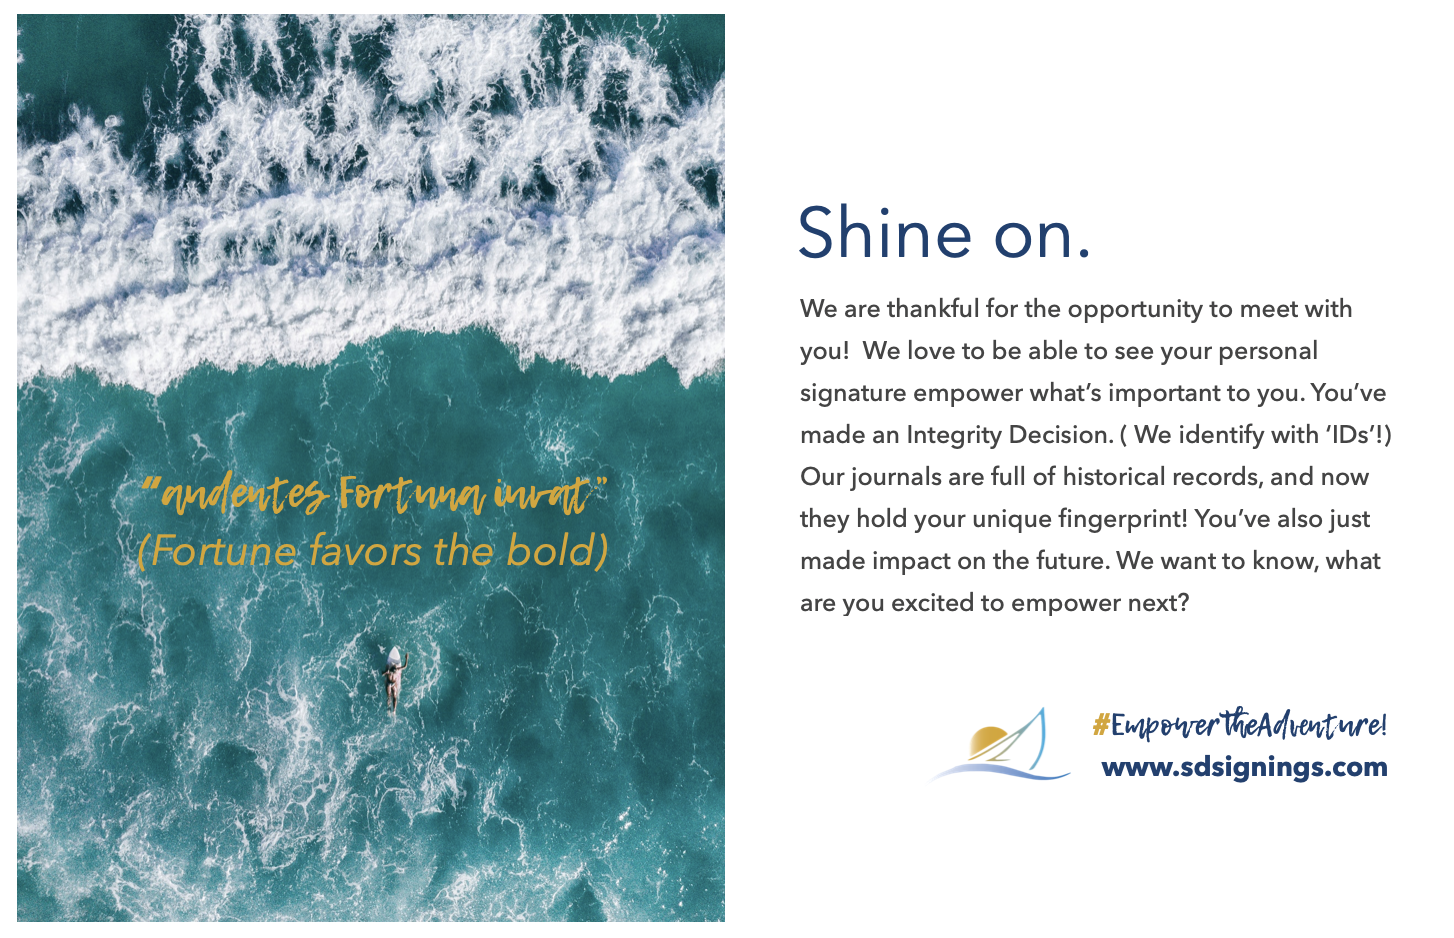 San Diego notary flyer that reads fortune favors the bold, and the importance of identity and integrity